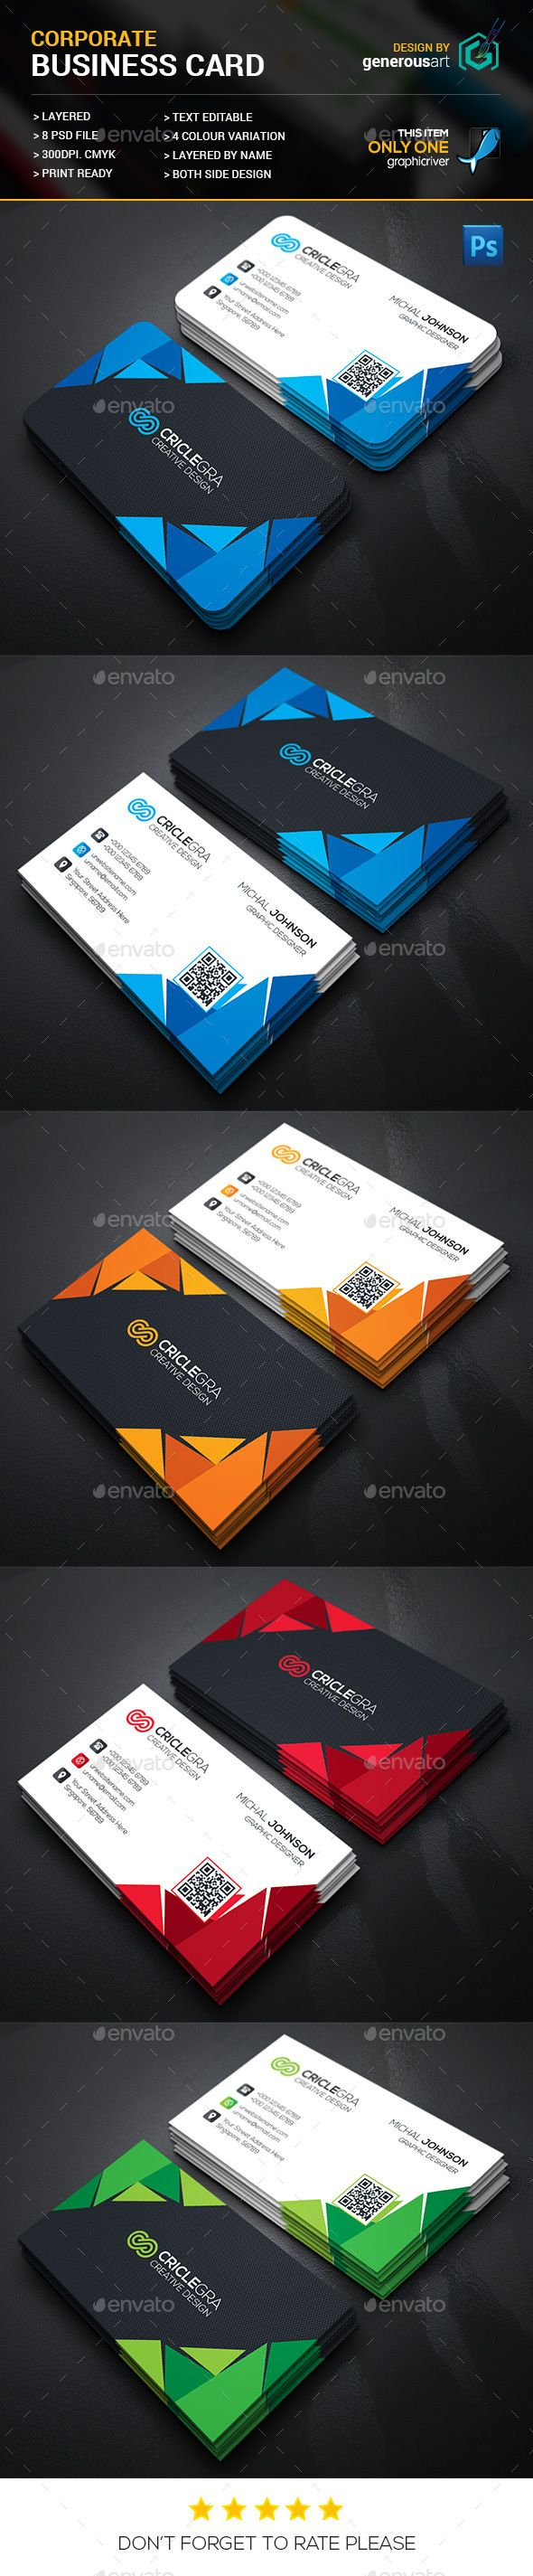 140 best bc images on pinterest business card design graphics and creative business card reheart Choice Image